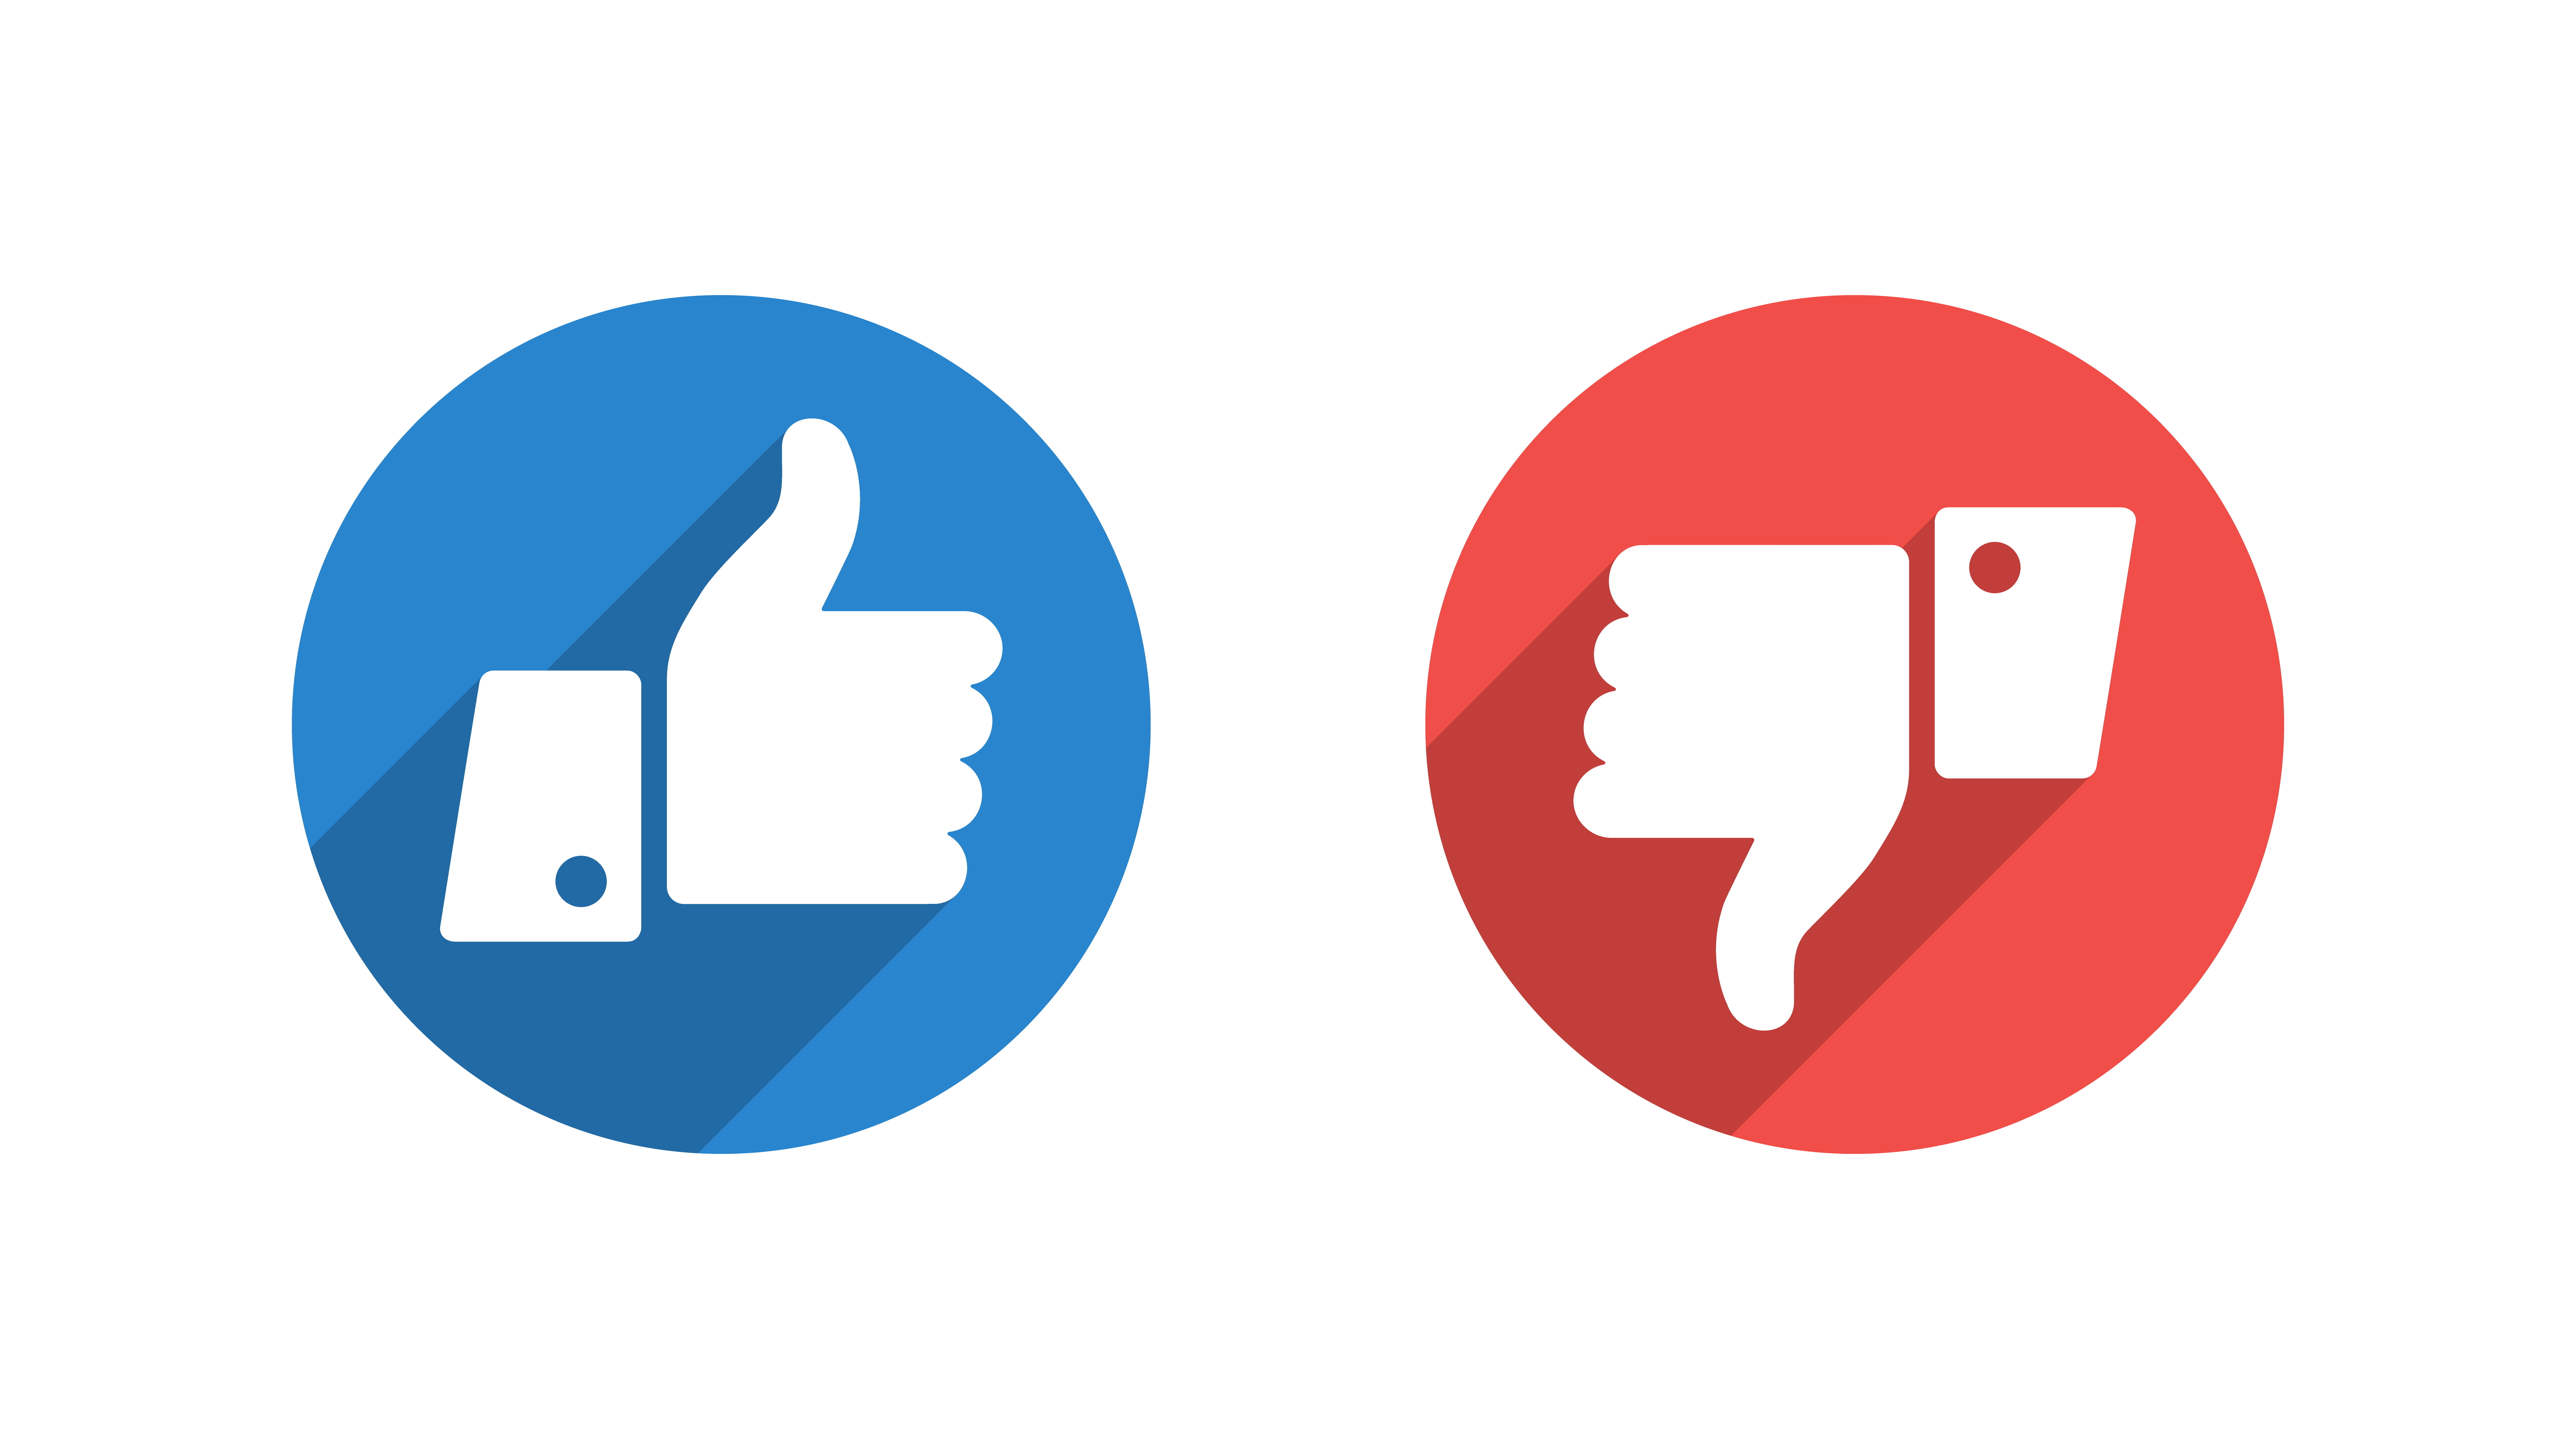 Thumbs-up-and-thumbs-down-icons-like-YouTube-like-and-dislike-buttons